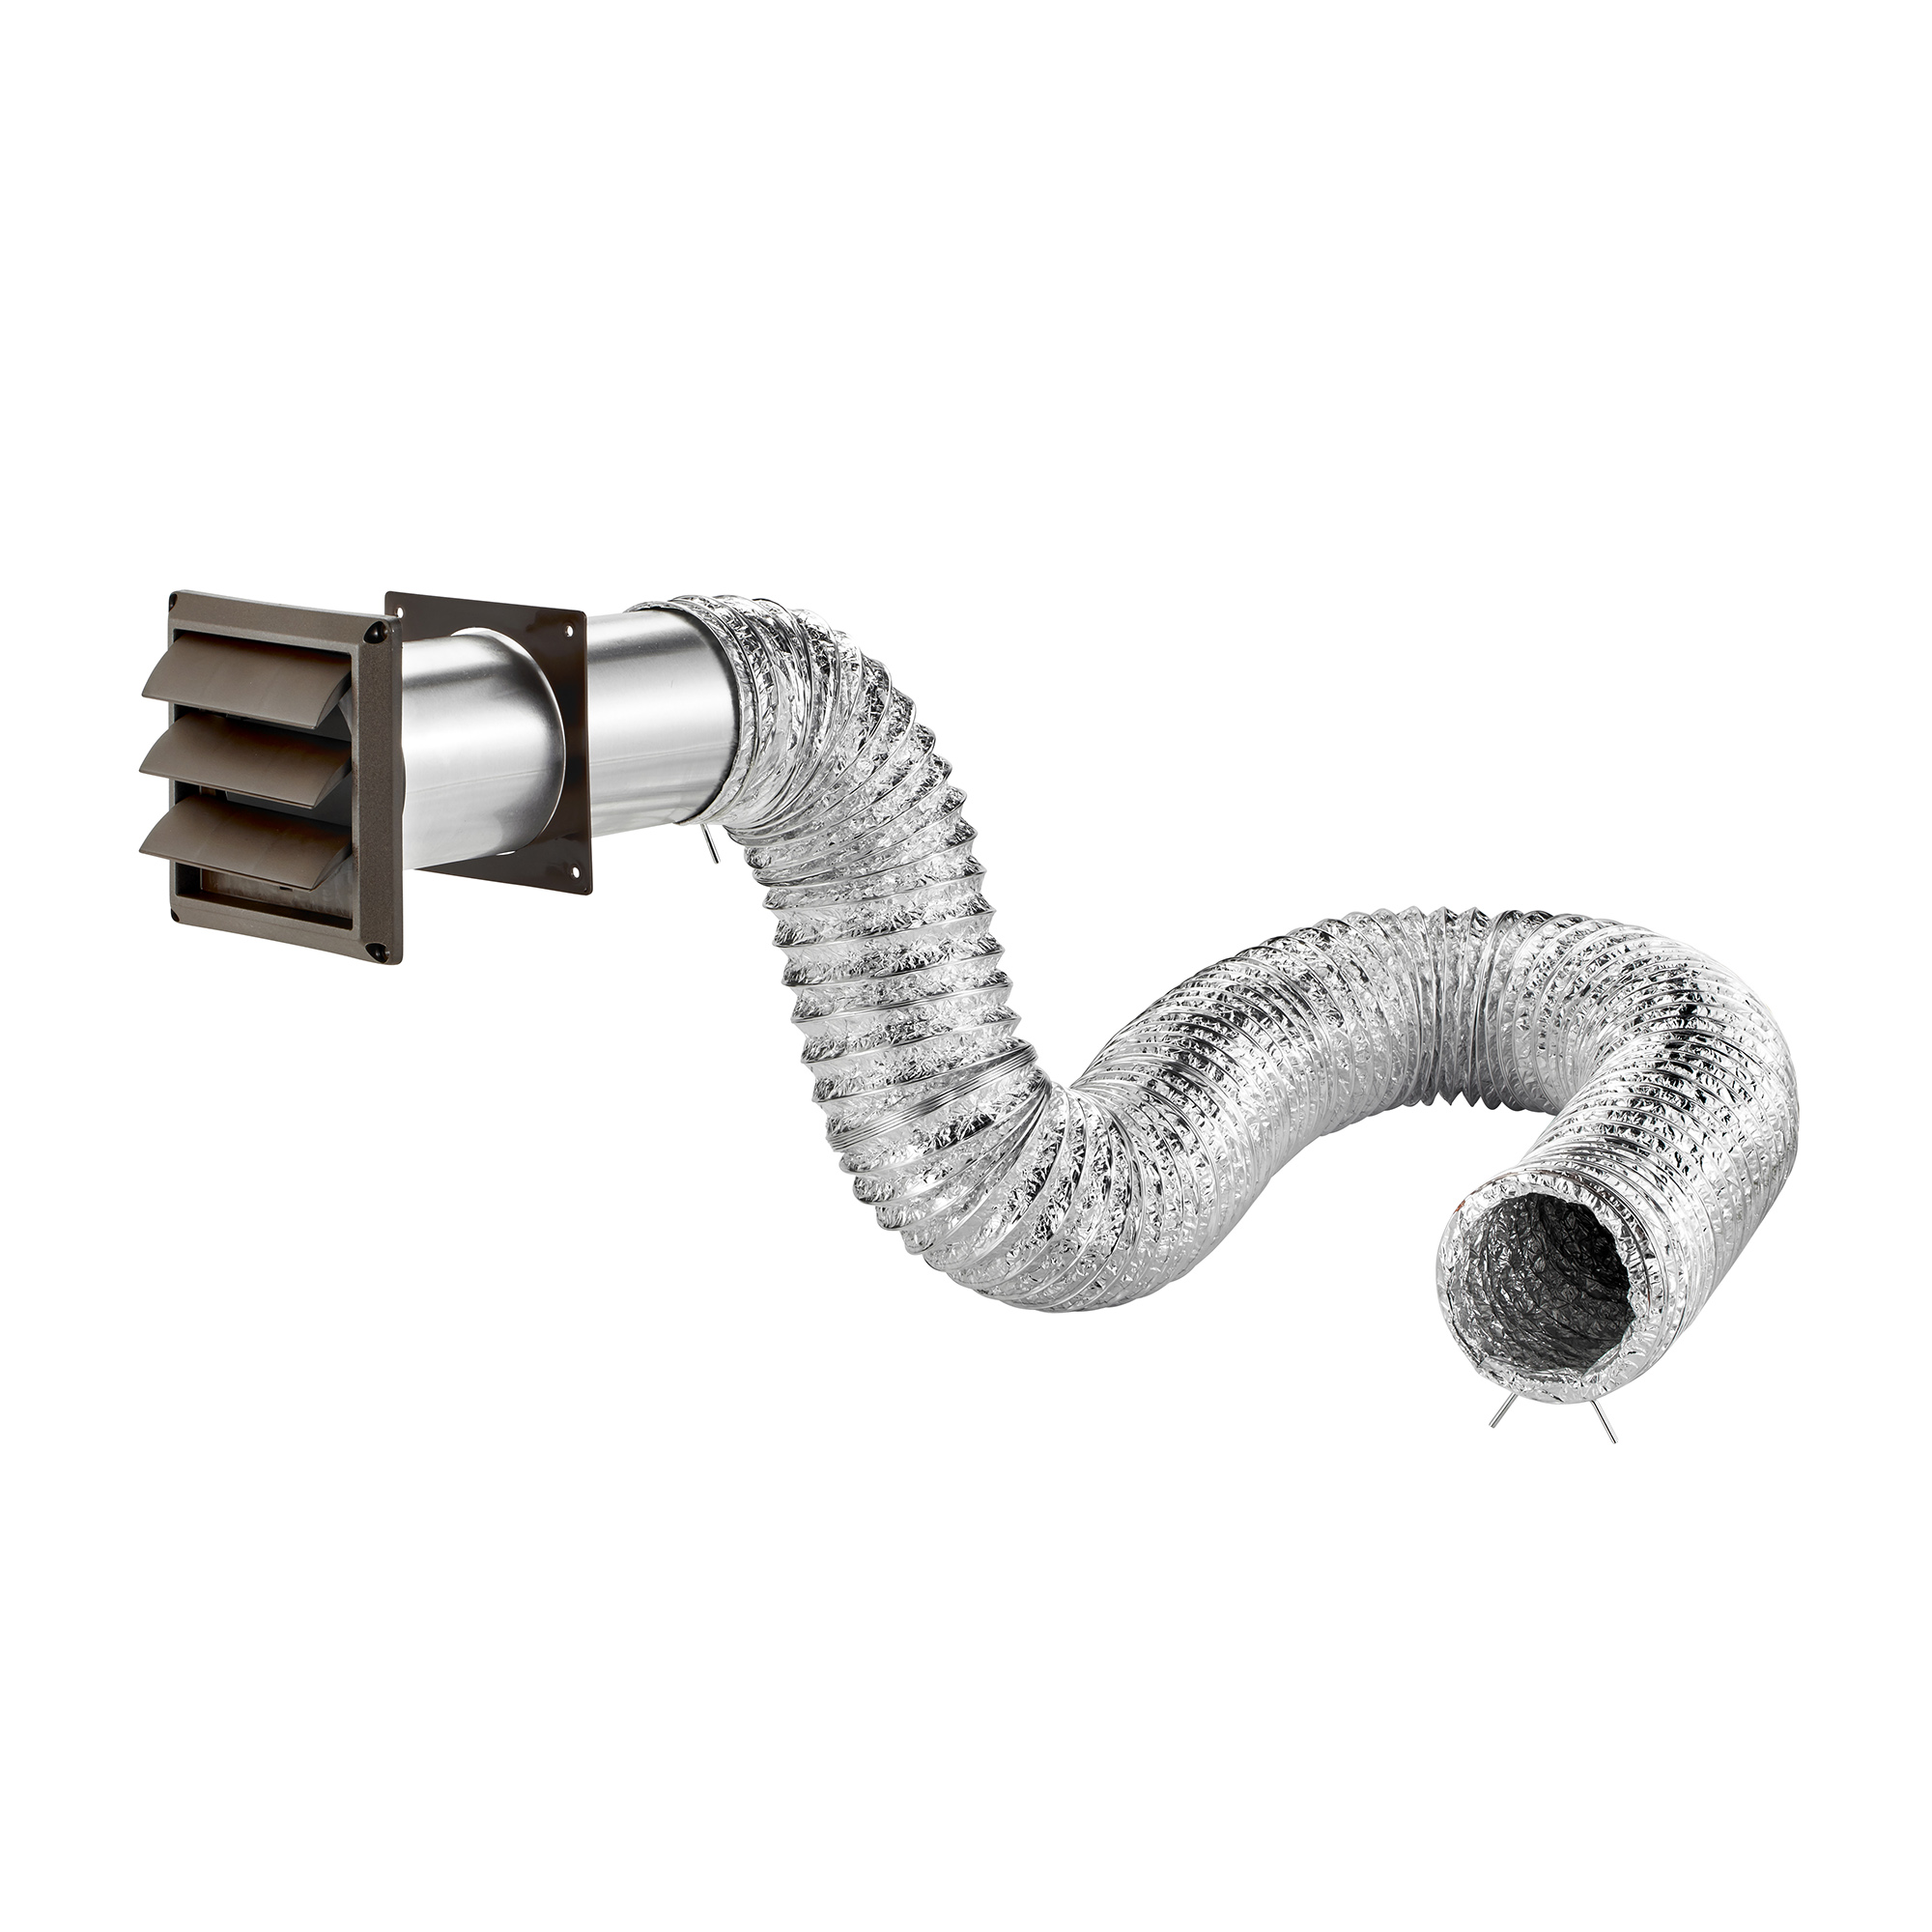 Quot ul a transition duct louvered vent kit